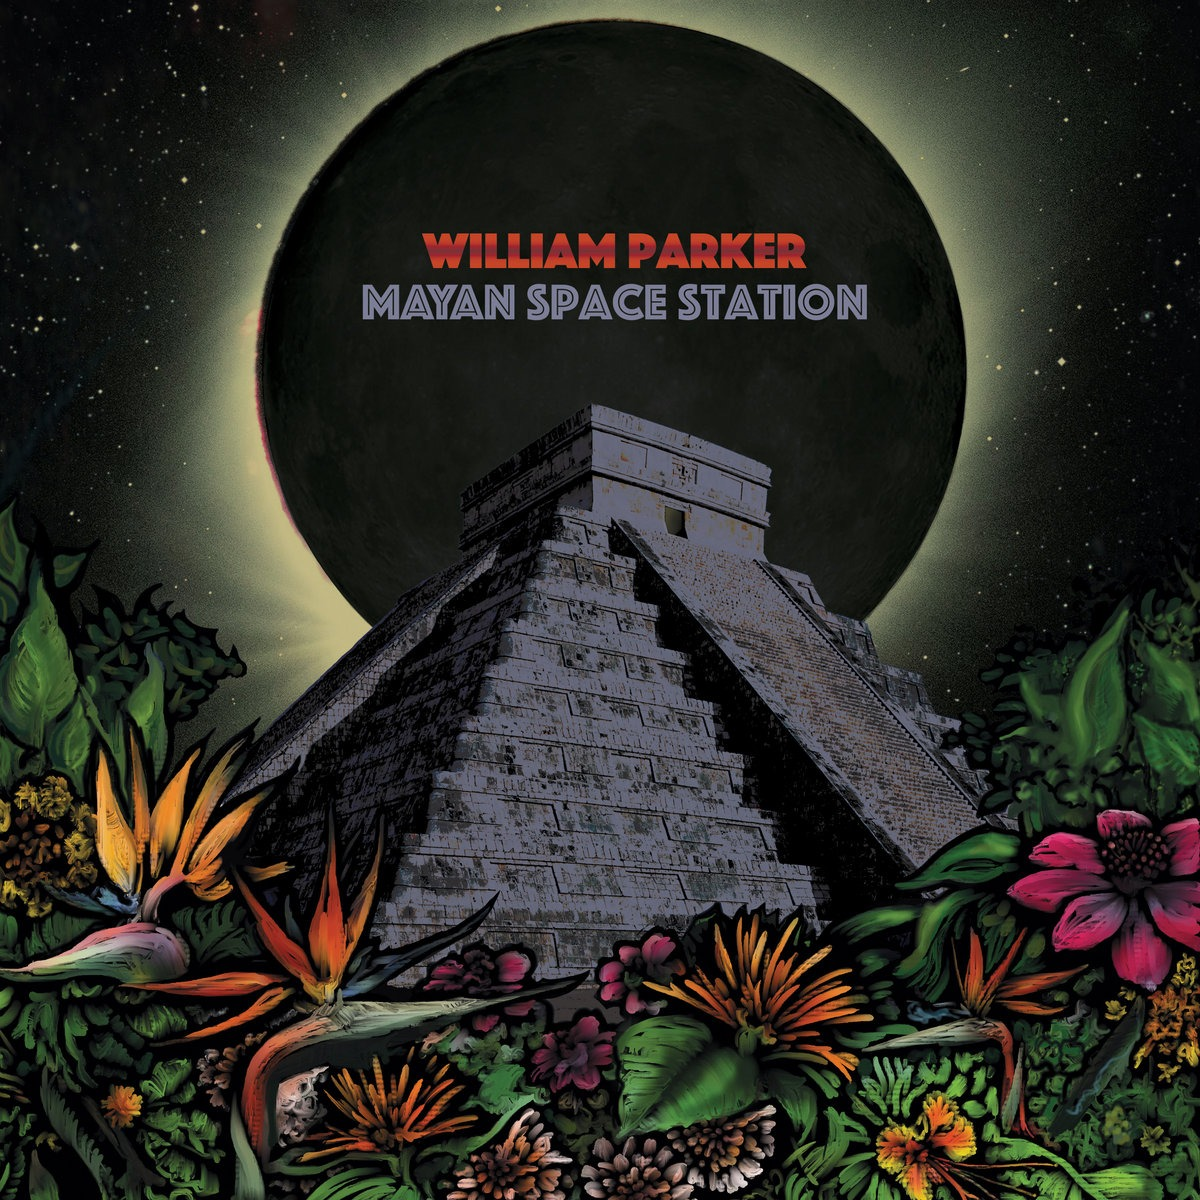 William Parker: Mayan Space Station